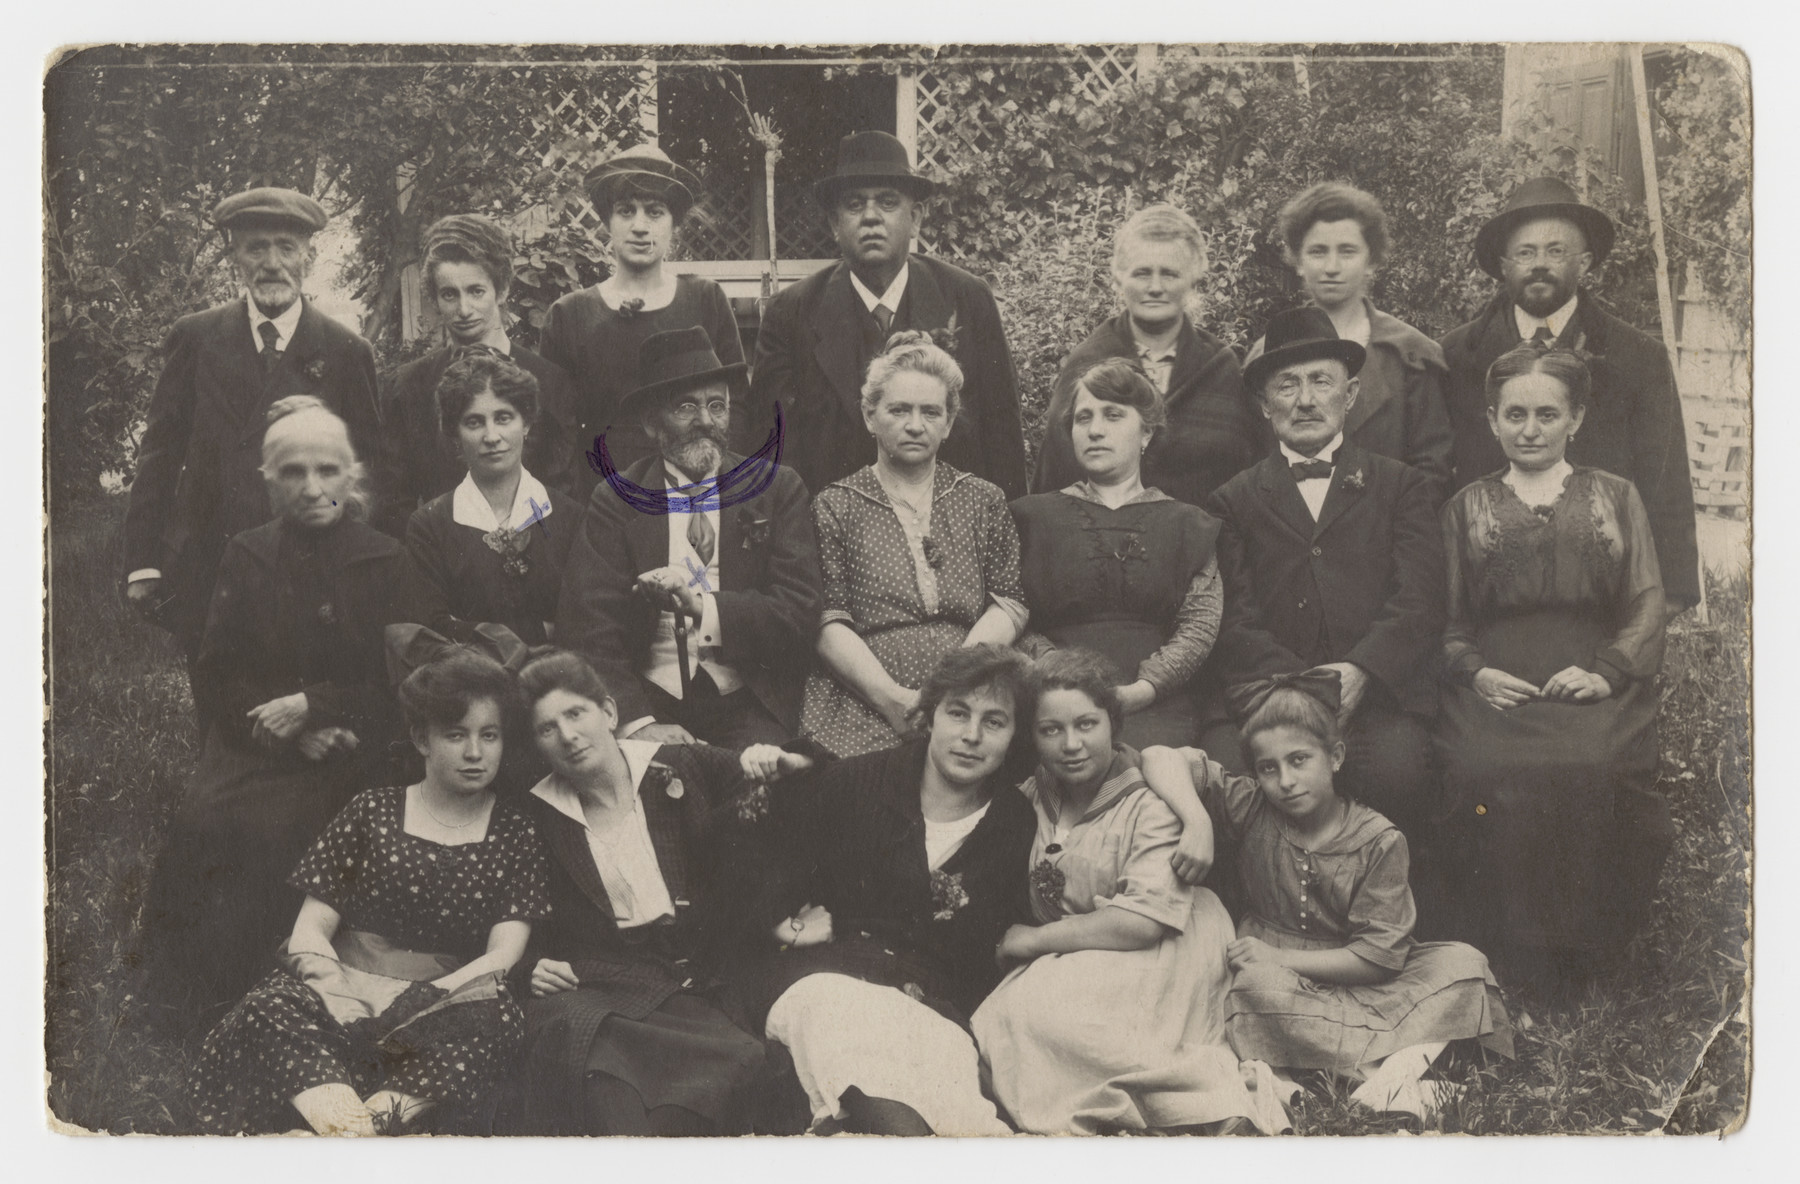 Erwin Schwalb 's maternal grandparents, the Goldners, pose in the center of a group portrait,